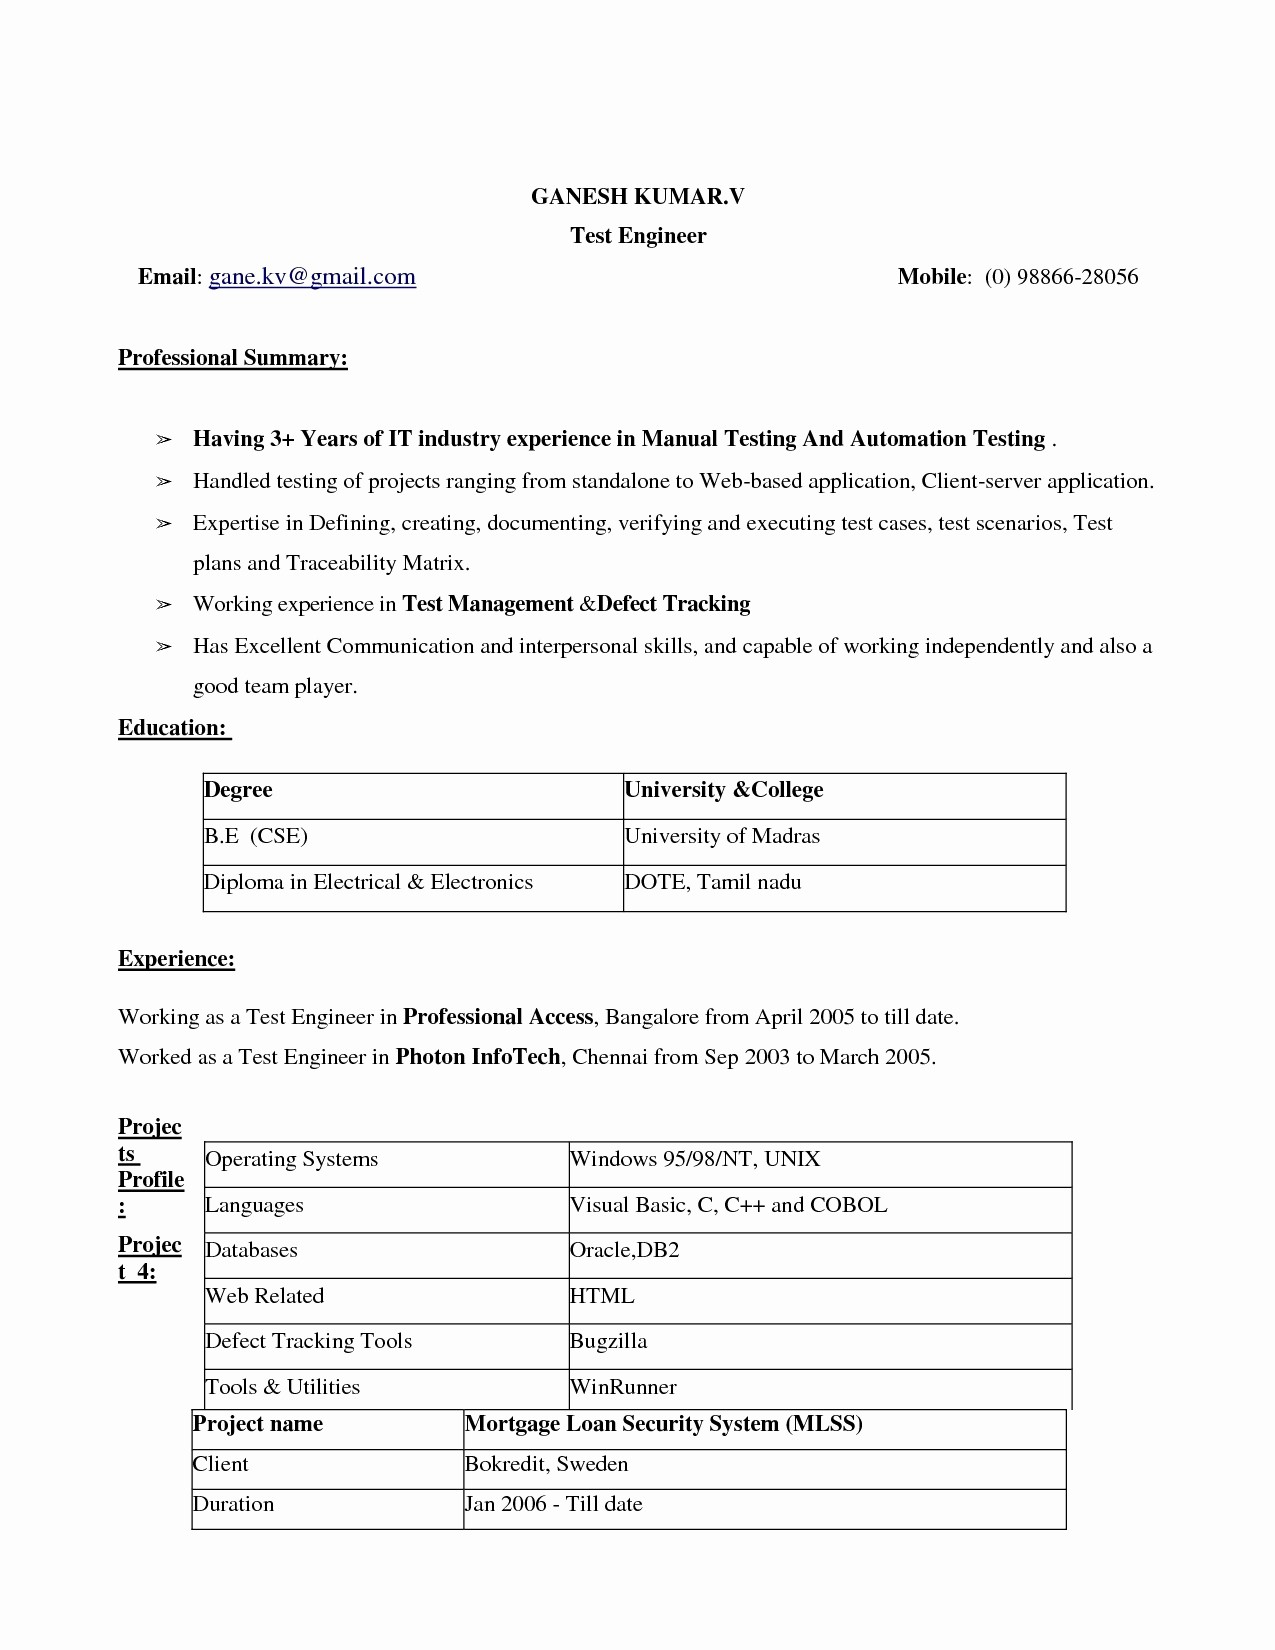 Resume Templates Download Microsoft Word Best Of Resume Template Microsoft Word 2017